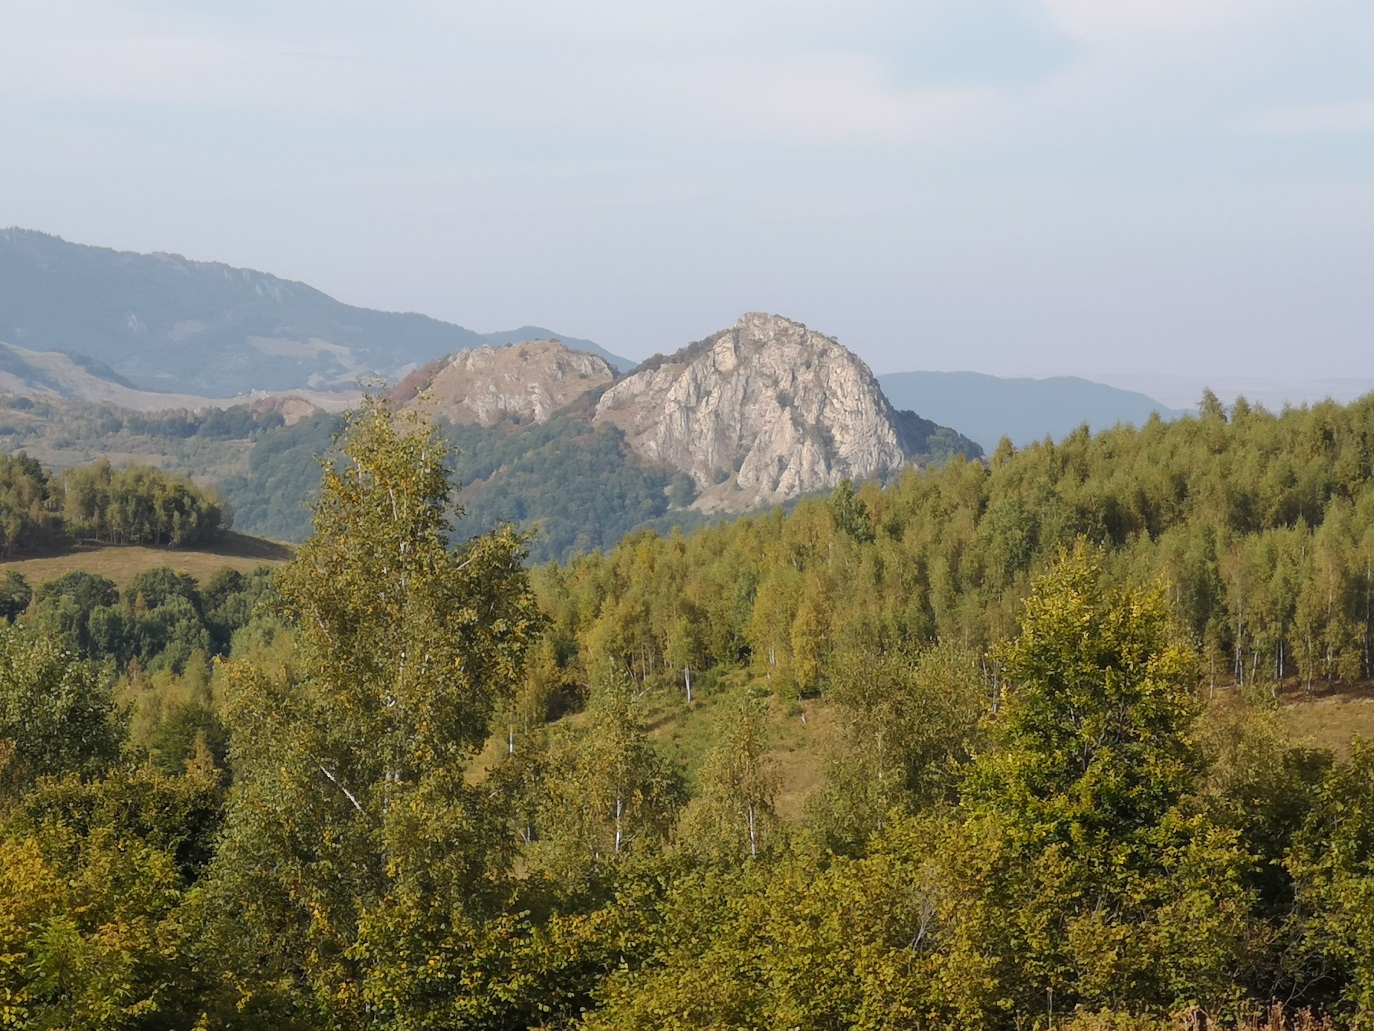 C:\Users\inrc\Documents\Romania\Mobile images\IMG_20190911_165009.jpg